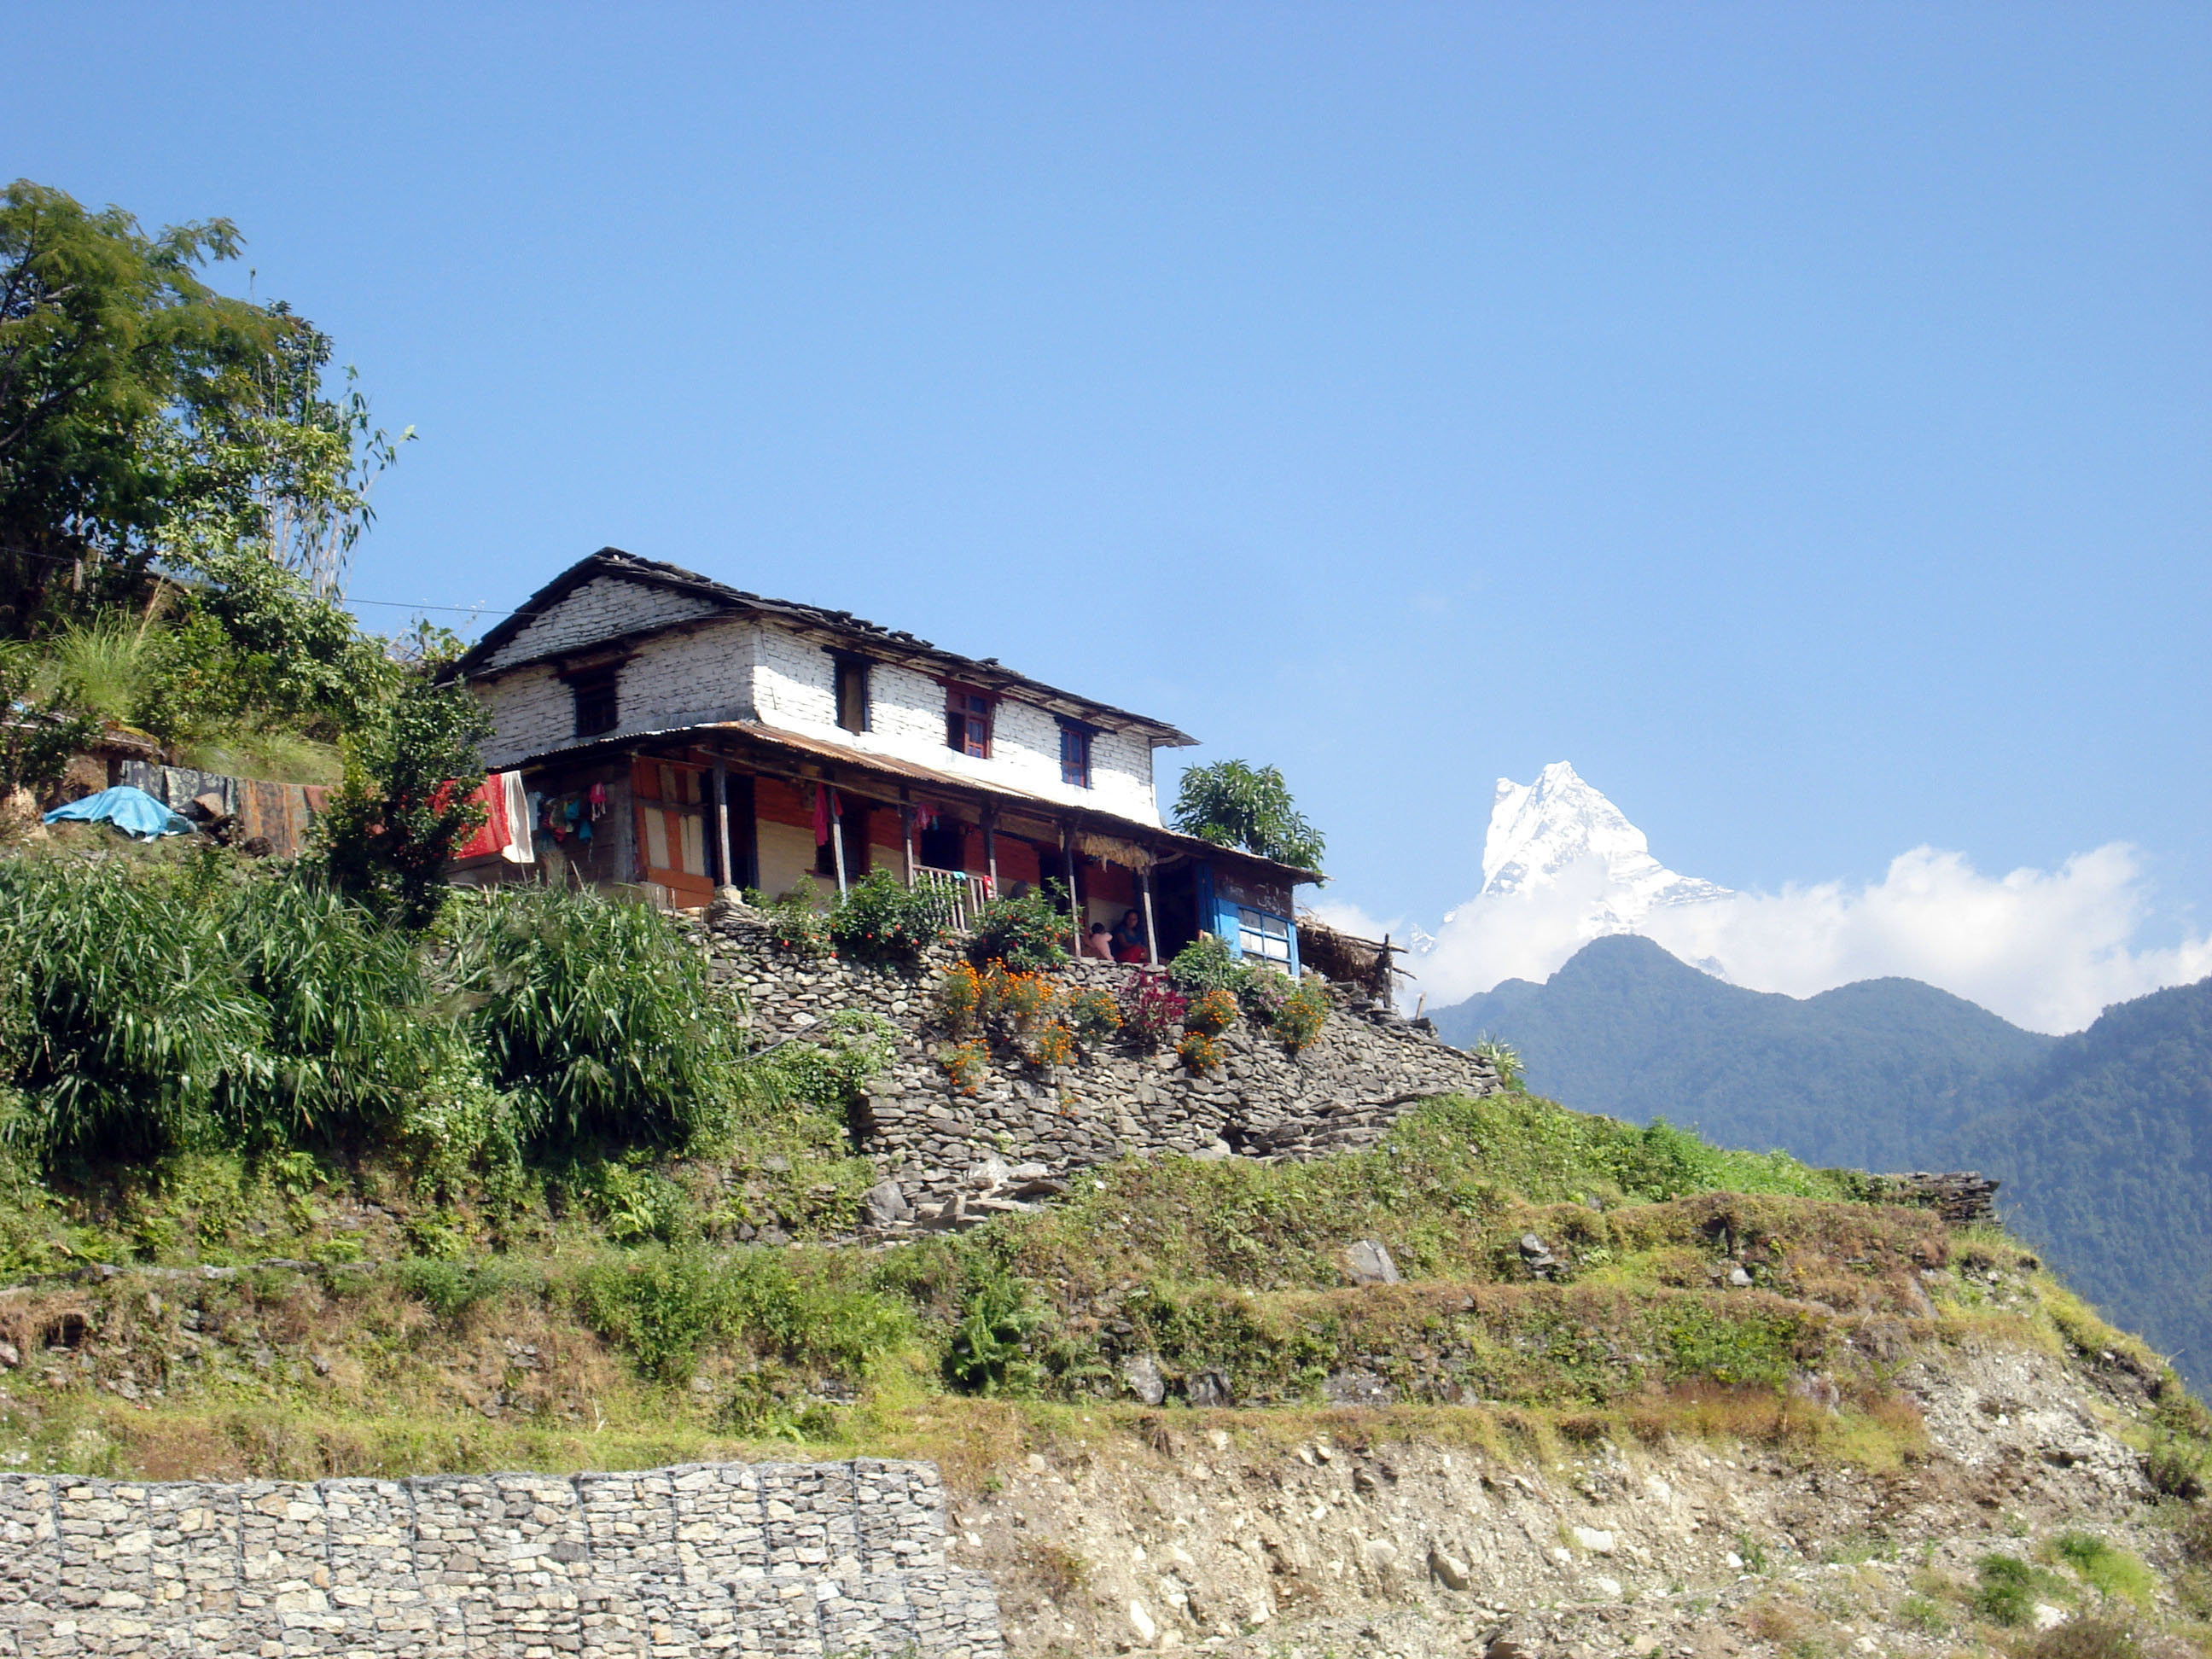 Typical_rural_Nepali_house_with_Mt._Fistail_in_backfround